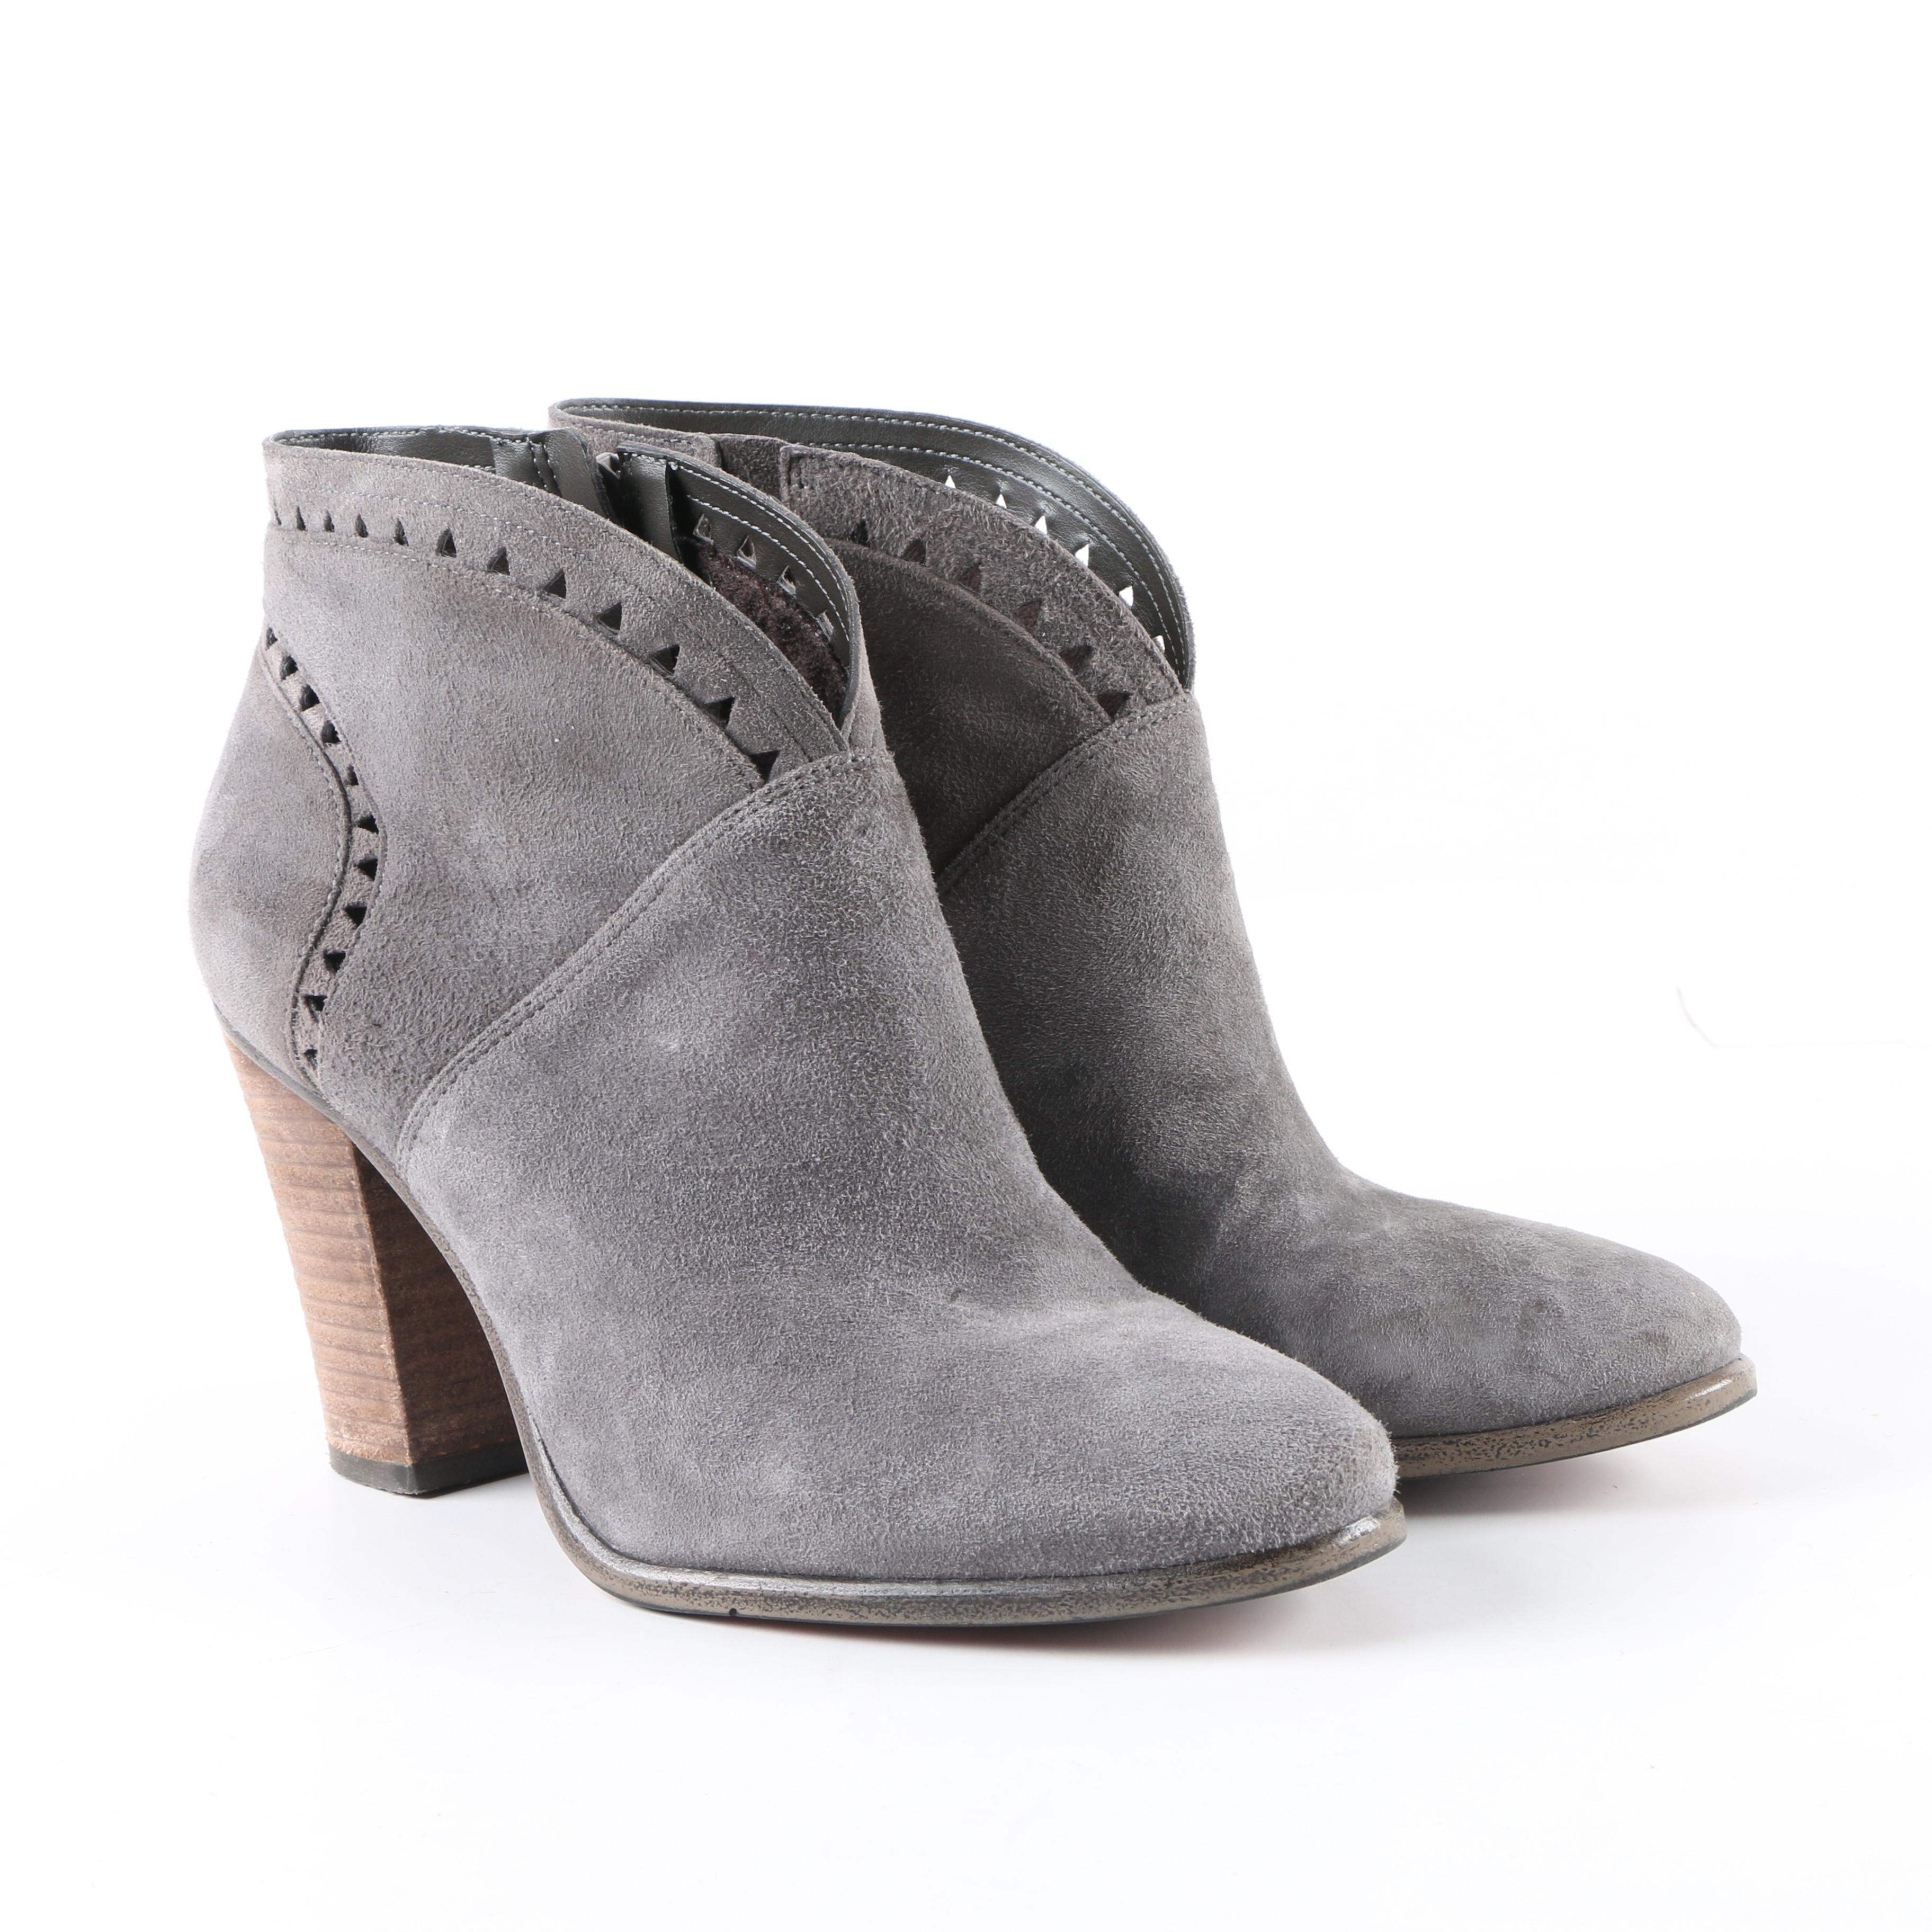 Vince Camuto Grey Suede Booties with Cut-Out Accents